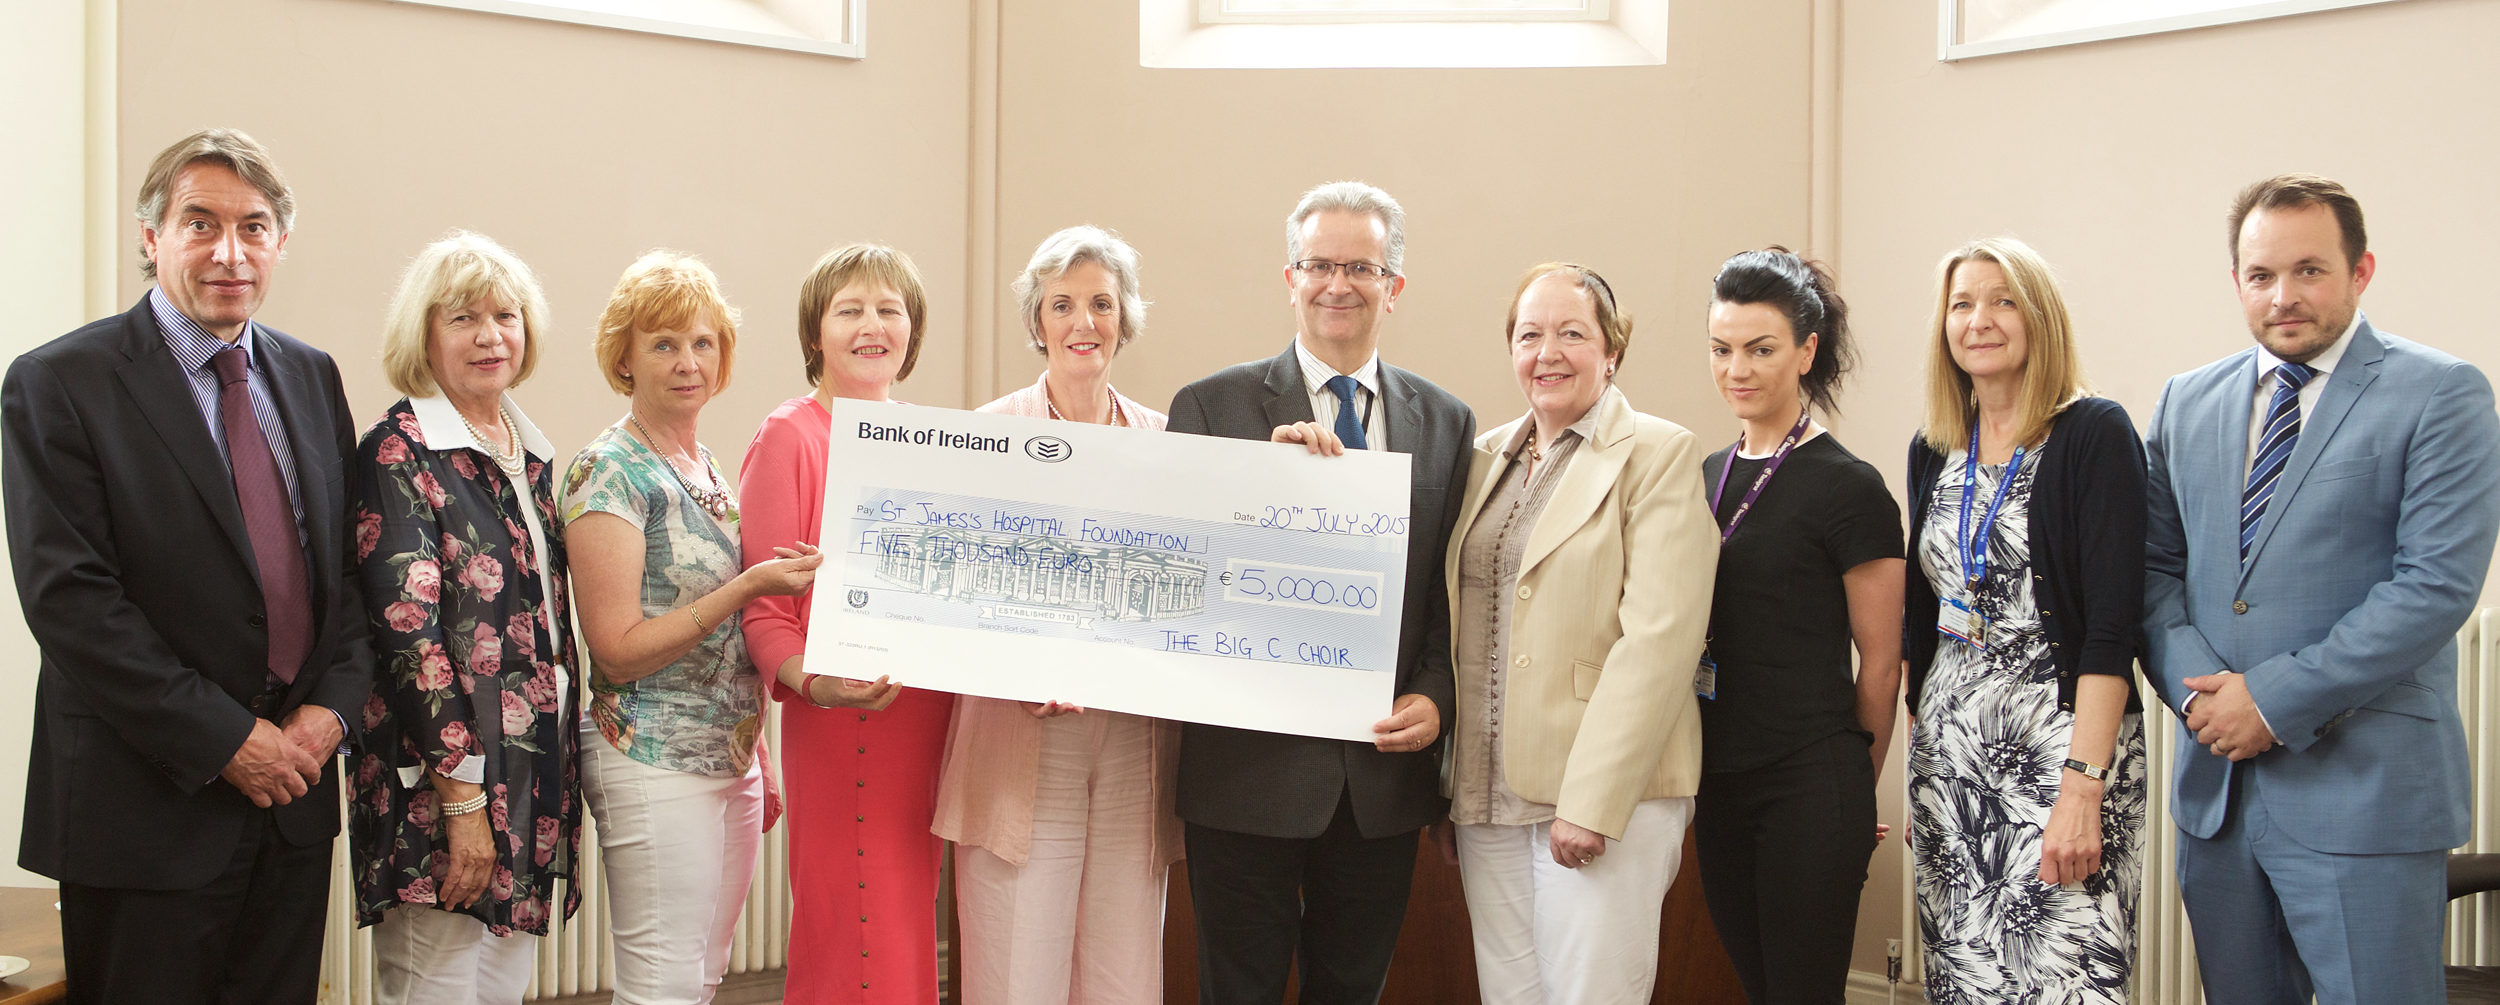 The Big C Choir present a cheque to St. James's Hospital Foundation